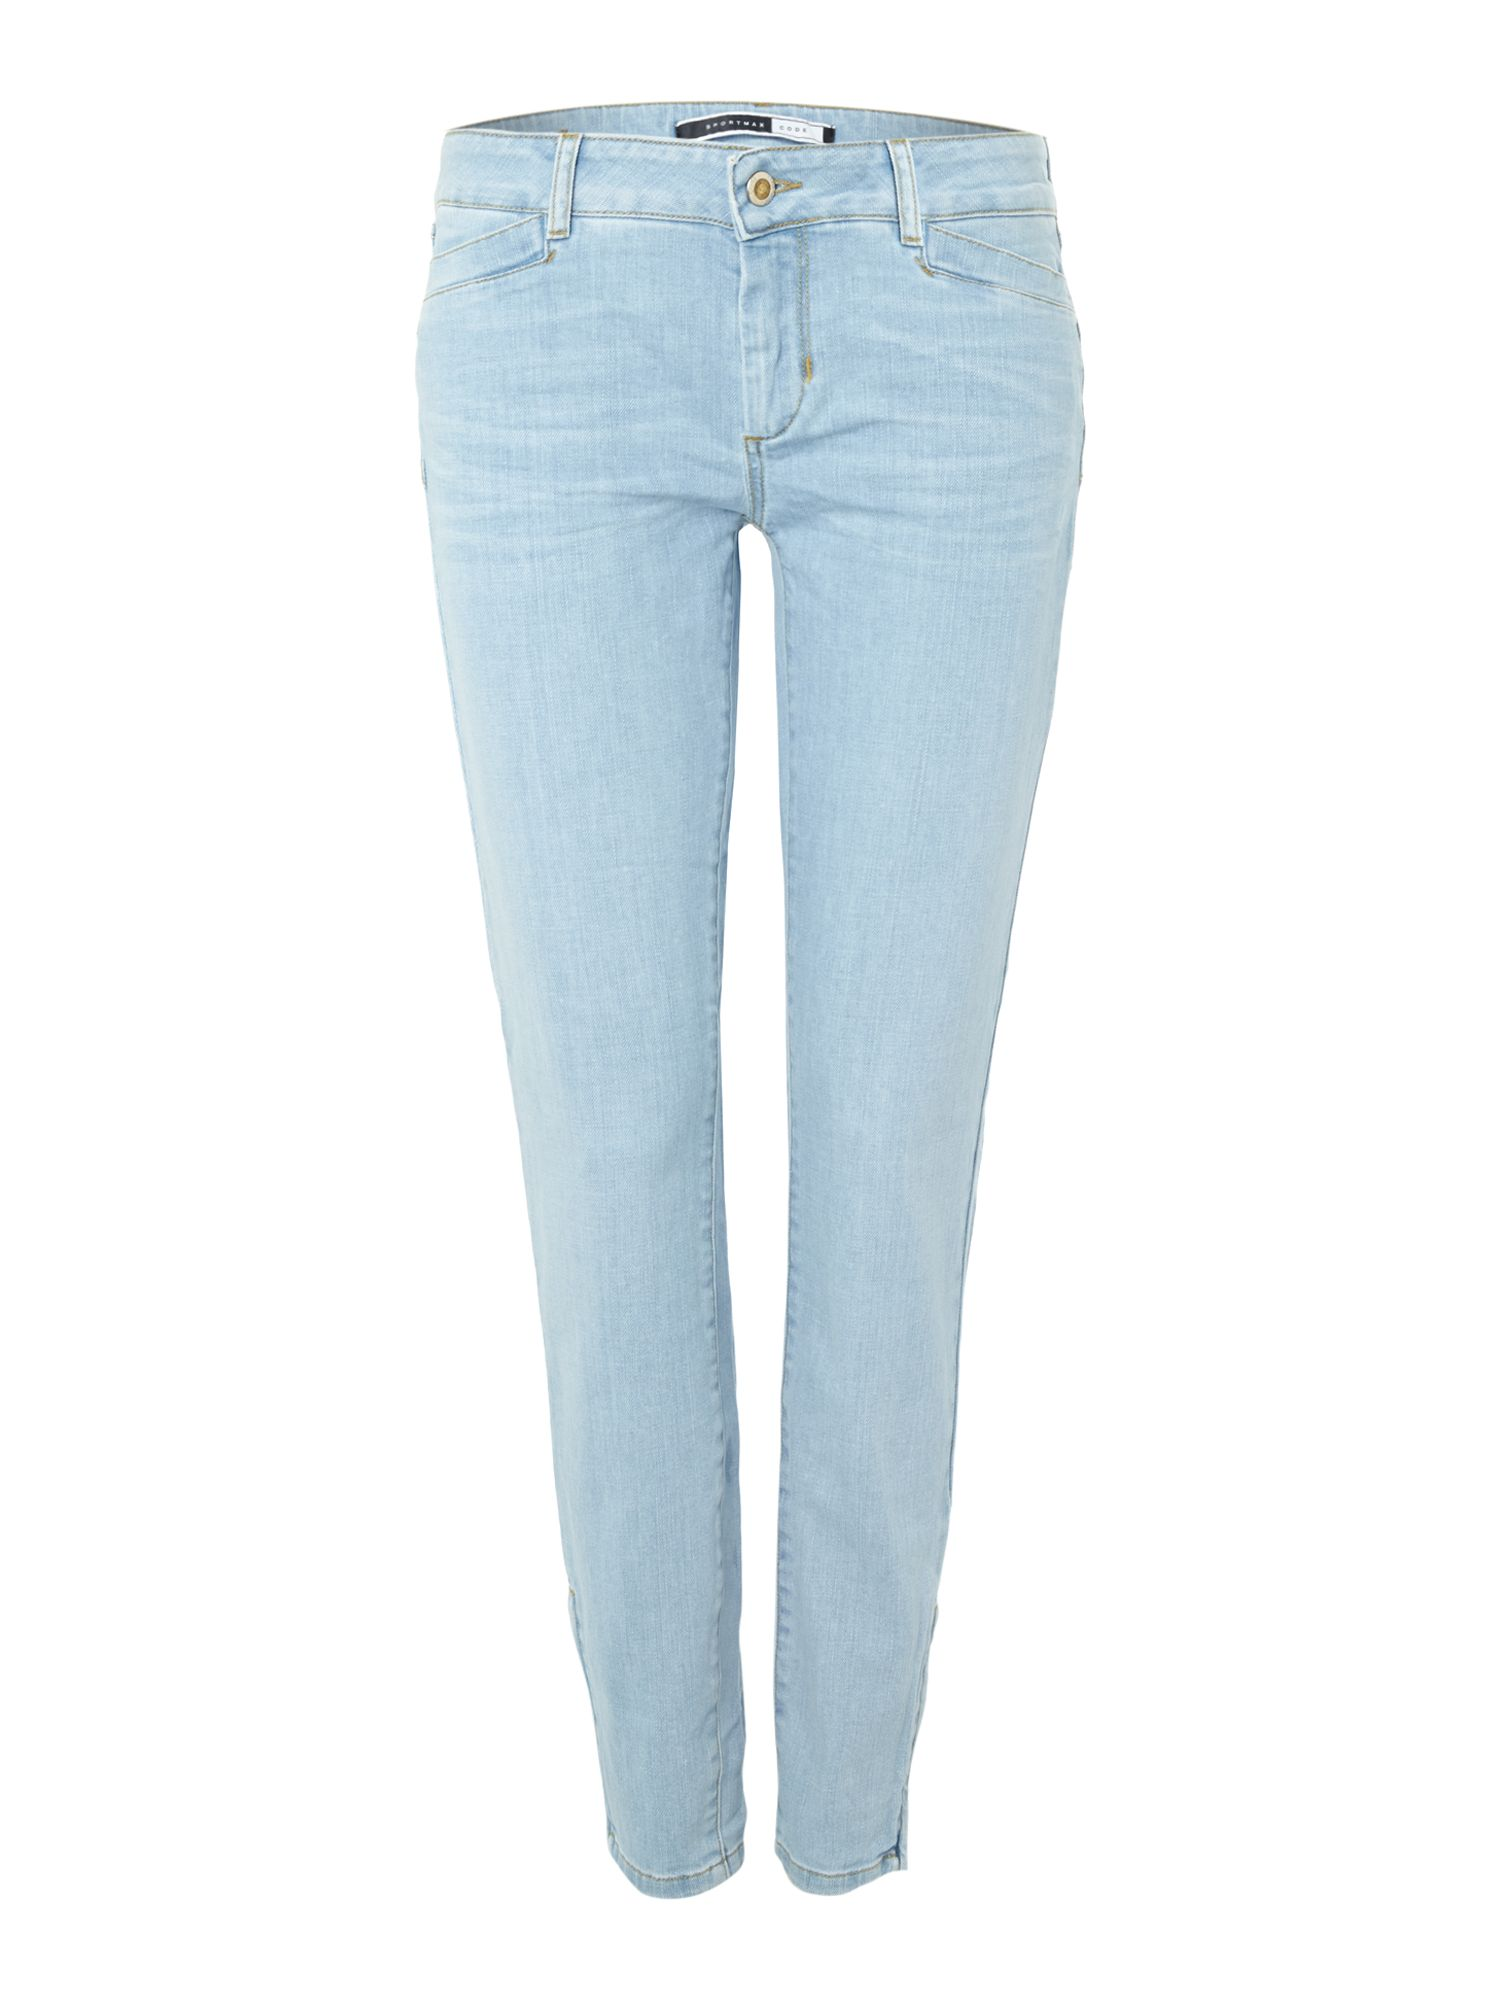 Libia Perfect fit jeans with zip